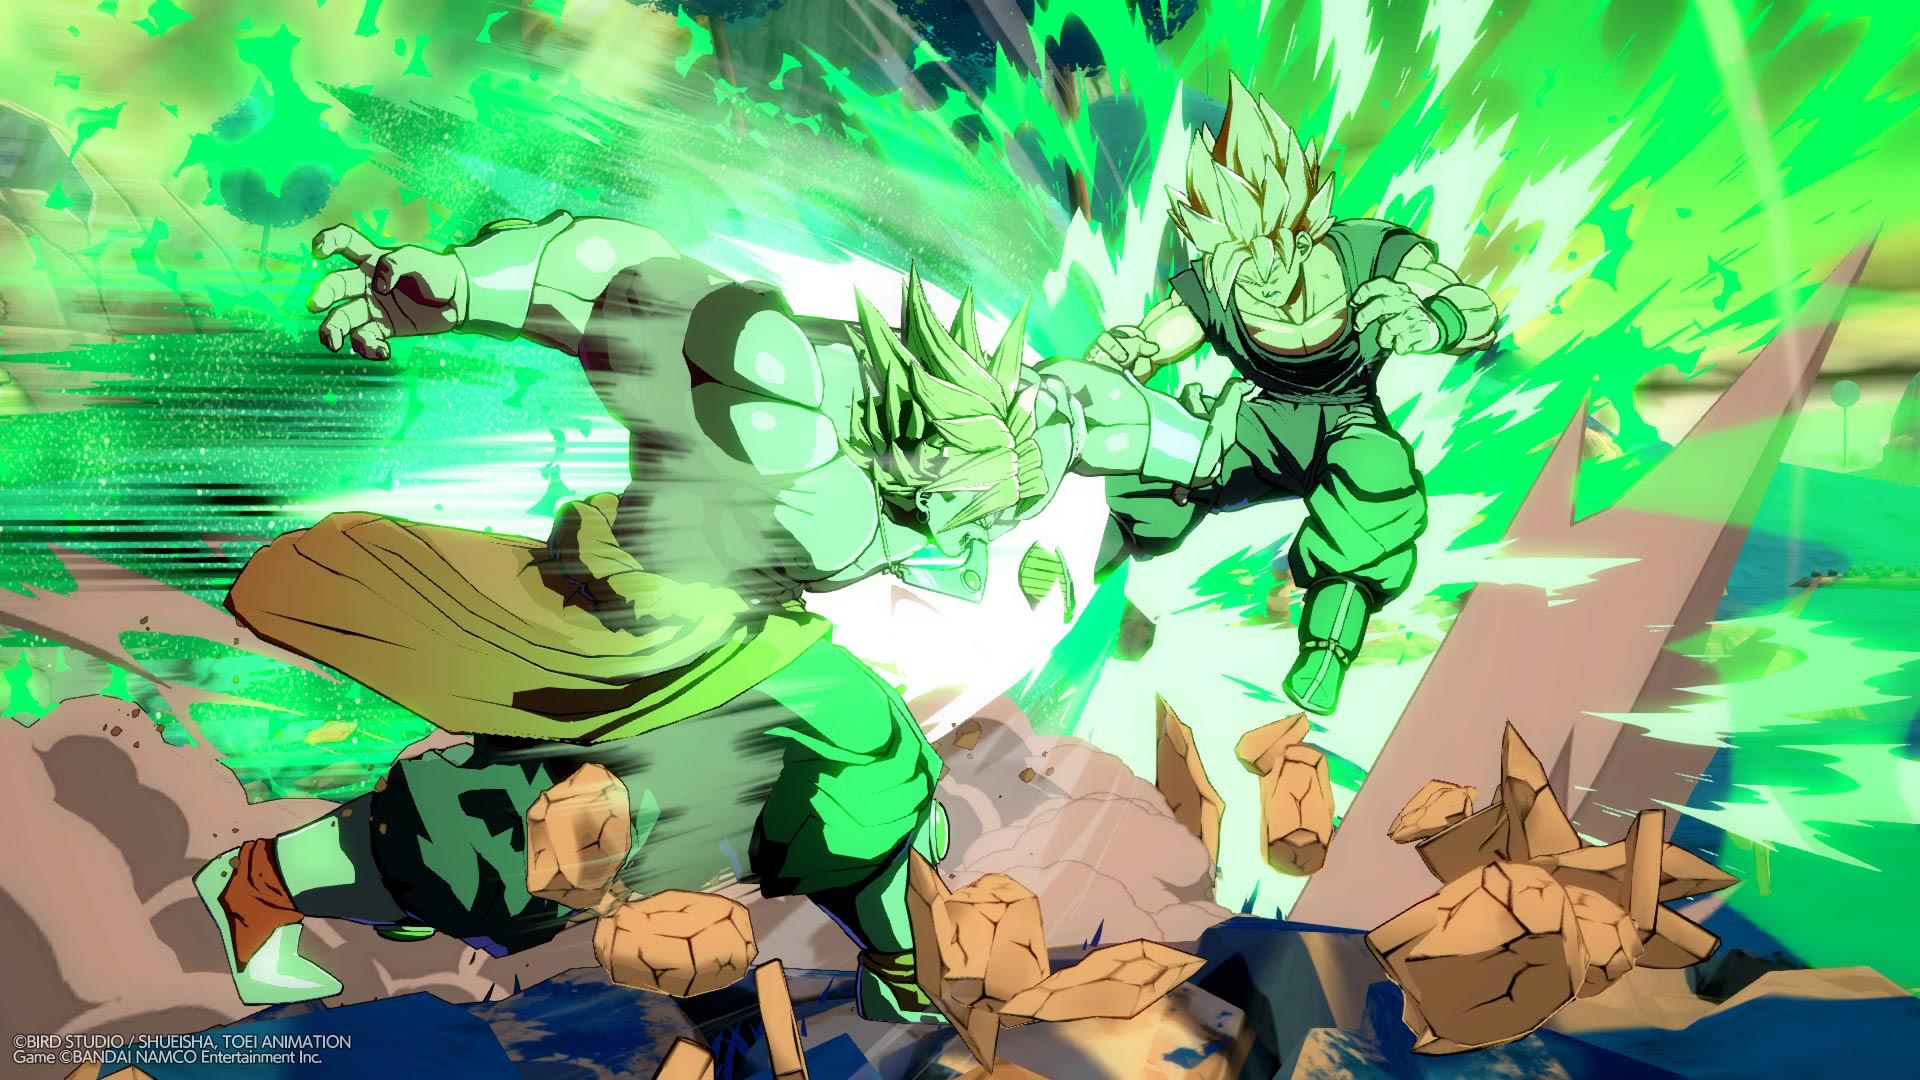 Broly and Bardock screenshots in Dragon Ball FighterZ 8 out of 12 image gallery